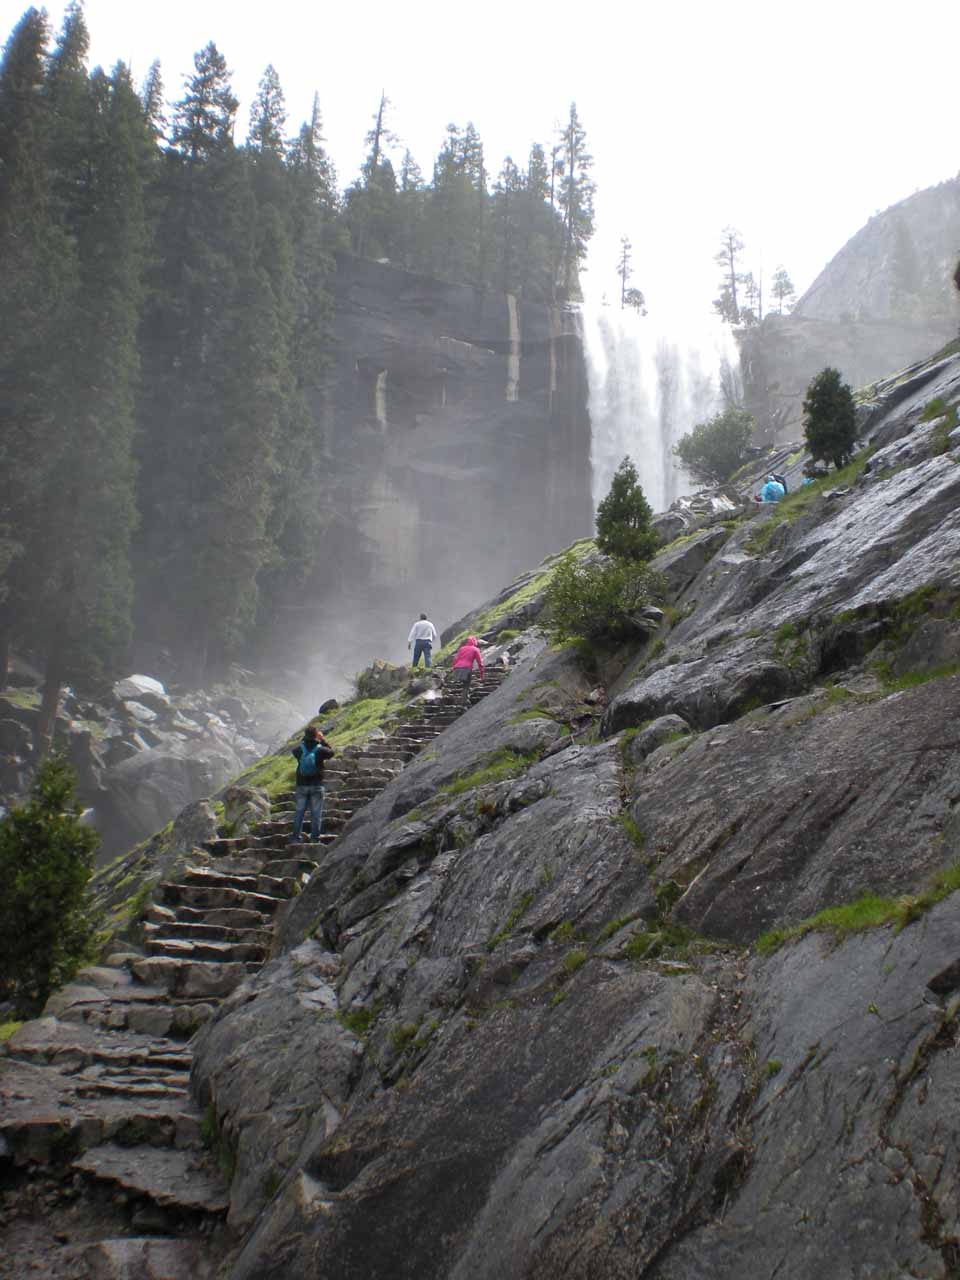 Going up some wet granite steps into the misty part of the Mist Trail